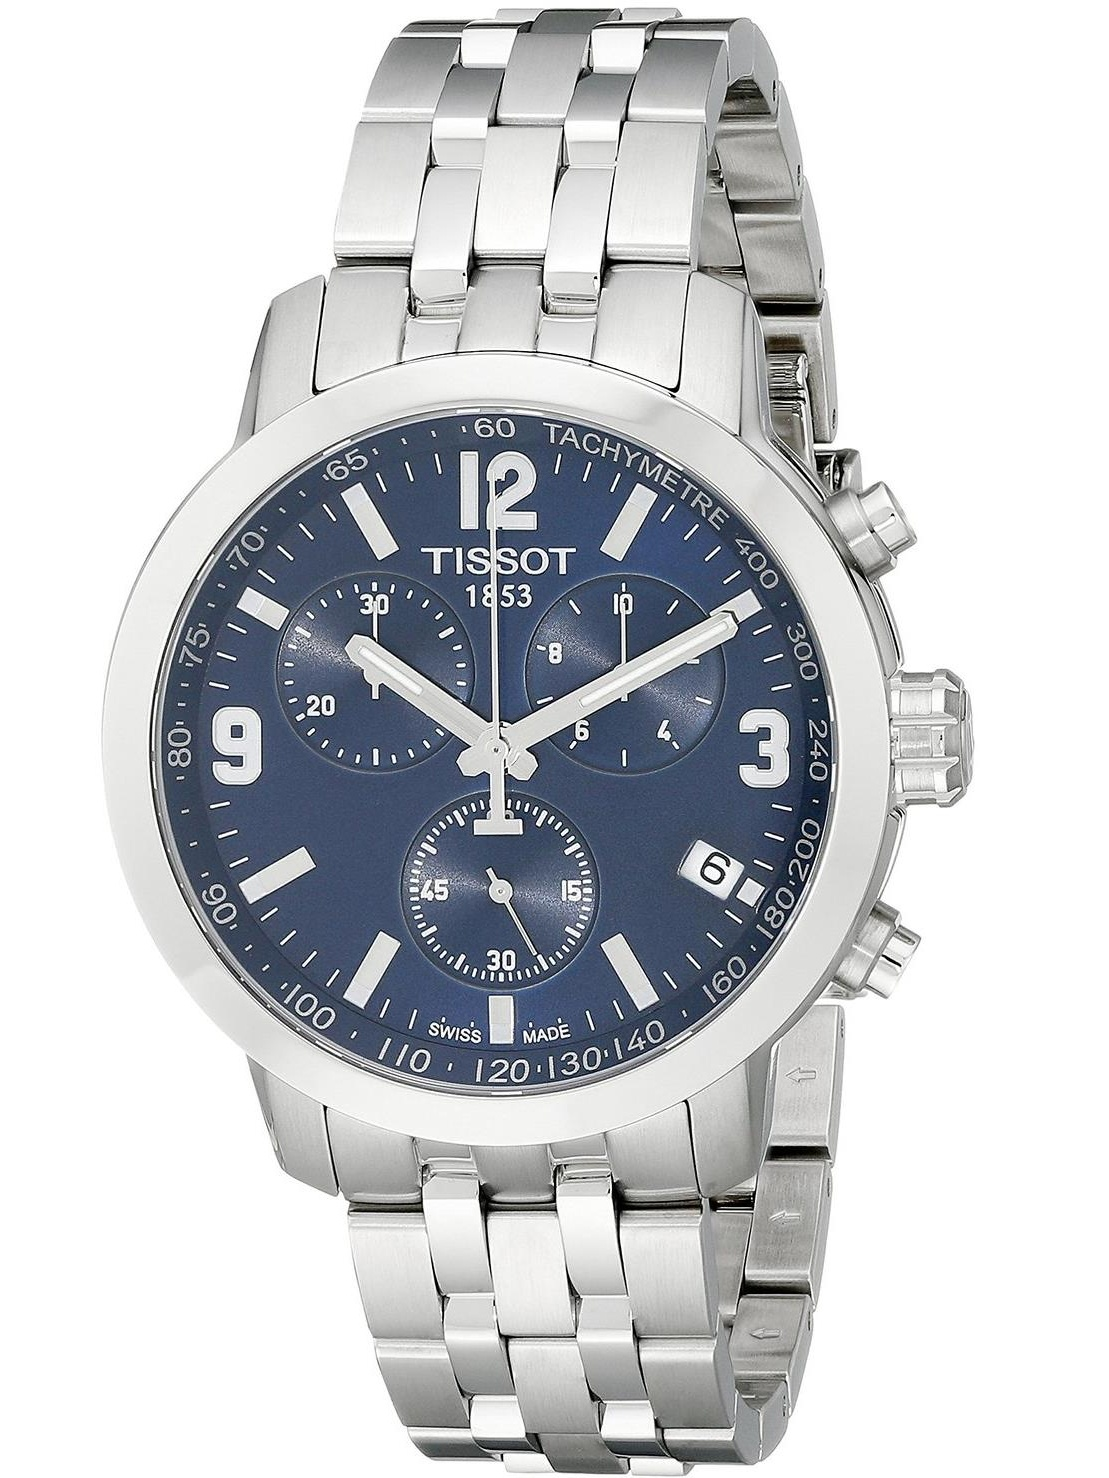 Tissot Men's 42mm Steel Bracelet & Case S. Sapphire Quartz Blue Dial Chronograph Watch T0554171104700